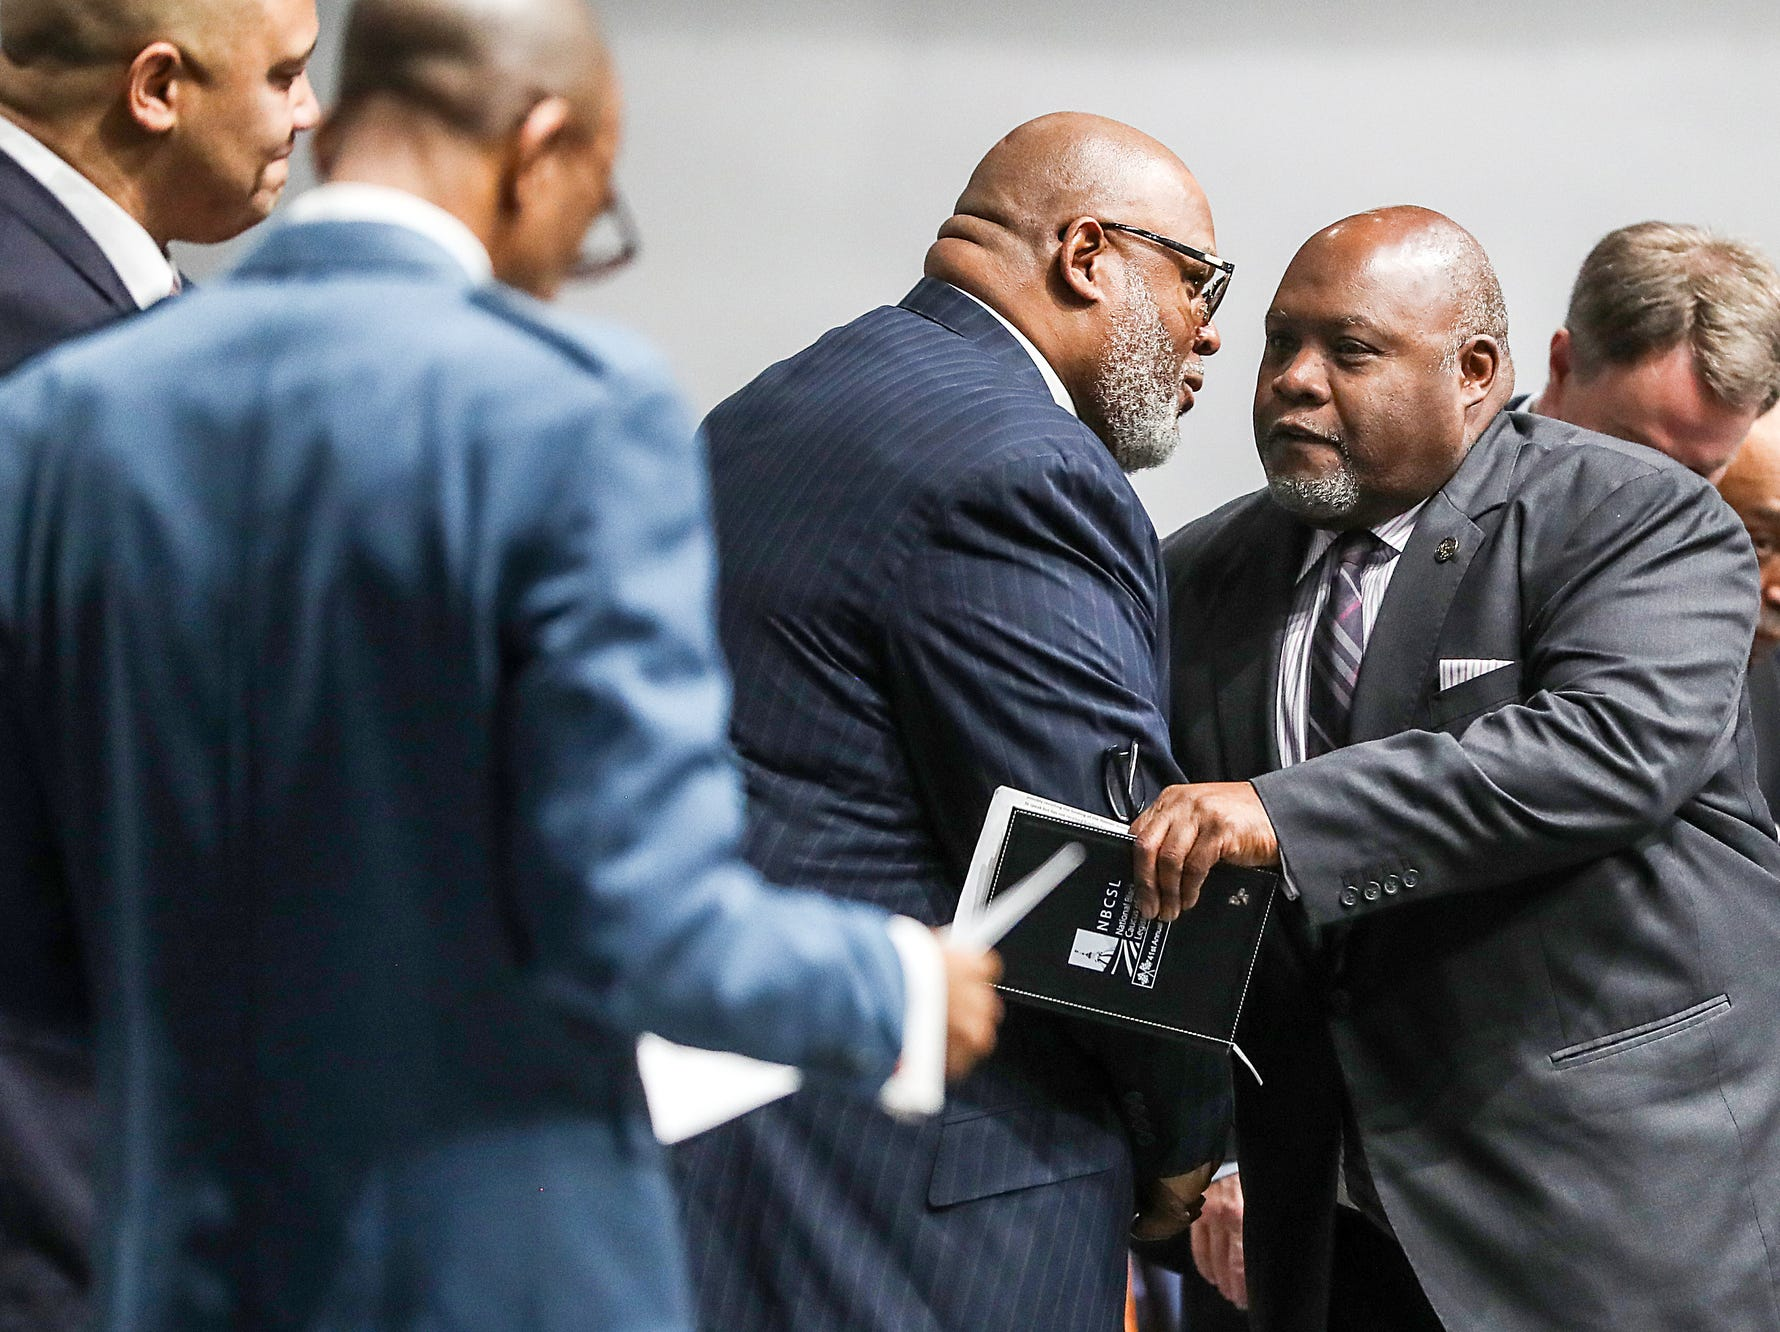 State Rep. Greg Porter greets clergymen before delivering remarks on the state of the state during a service celebrating the anniversary of the Emancipation Proclamation and honoring local leaders, at Olivet Missionary Baptist Church in Indianapolis, Tuesday, Jan. 1, 2019.